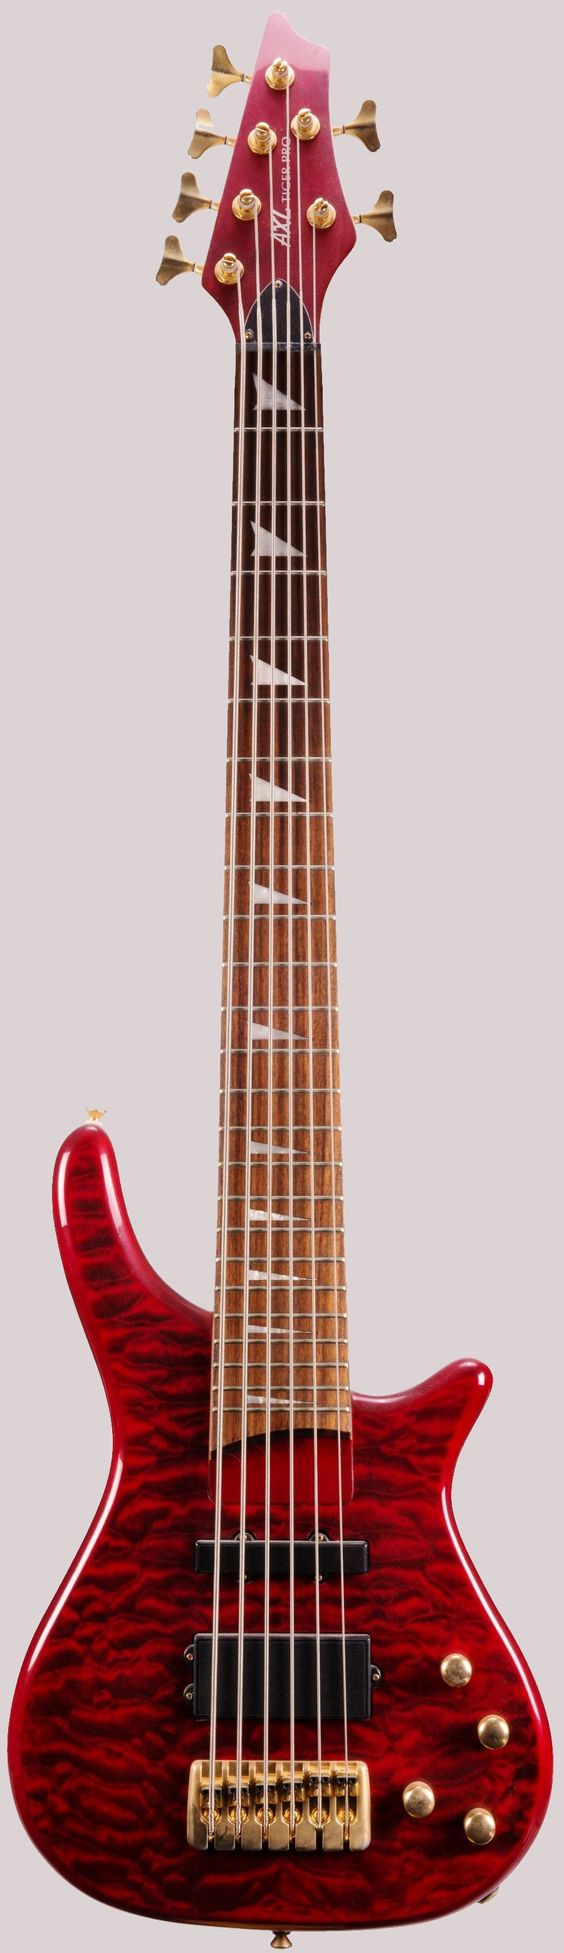 AXL tiger pro bass 6 at Ukulele Corner